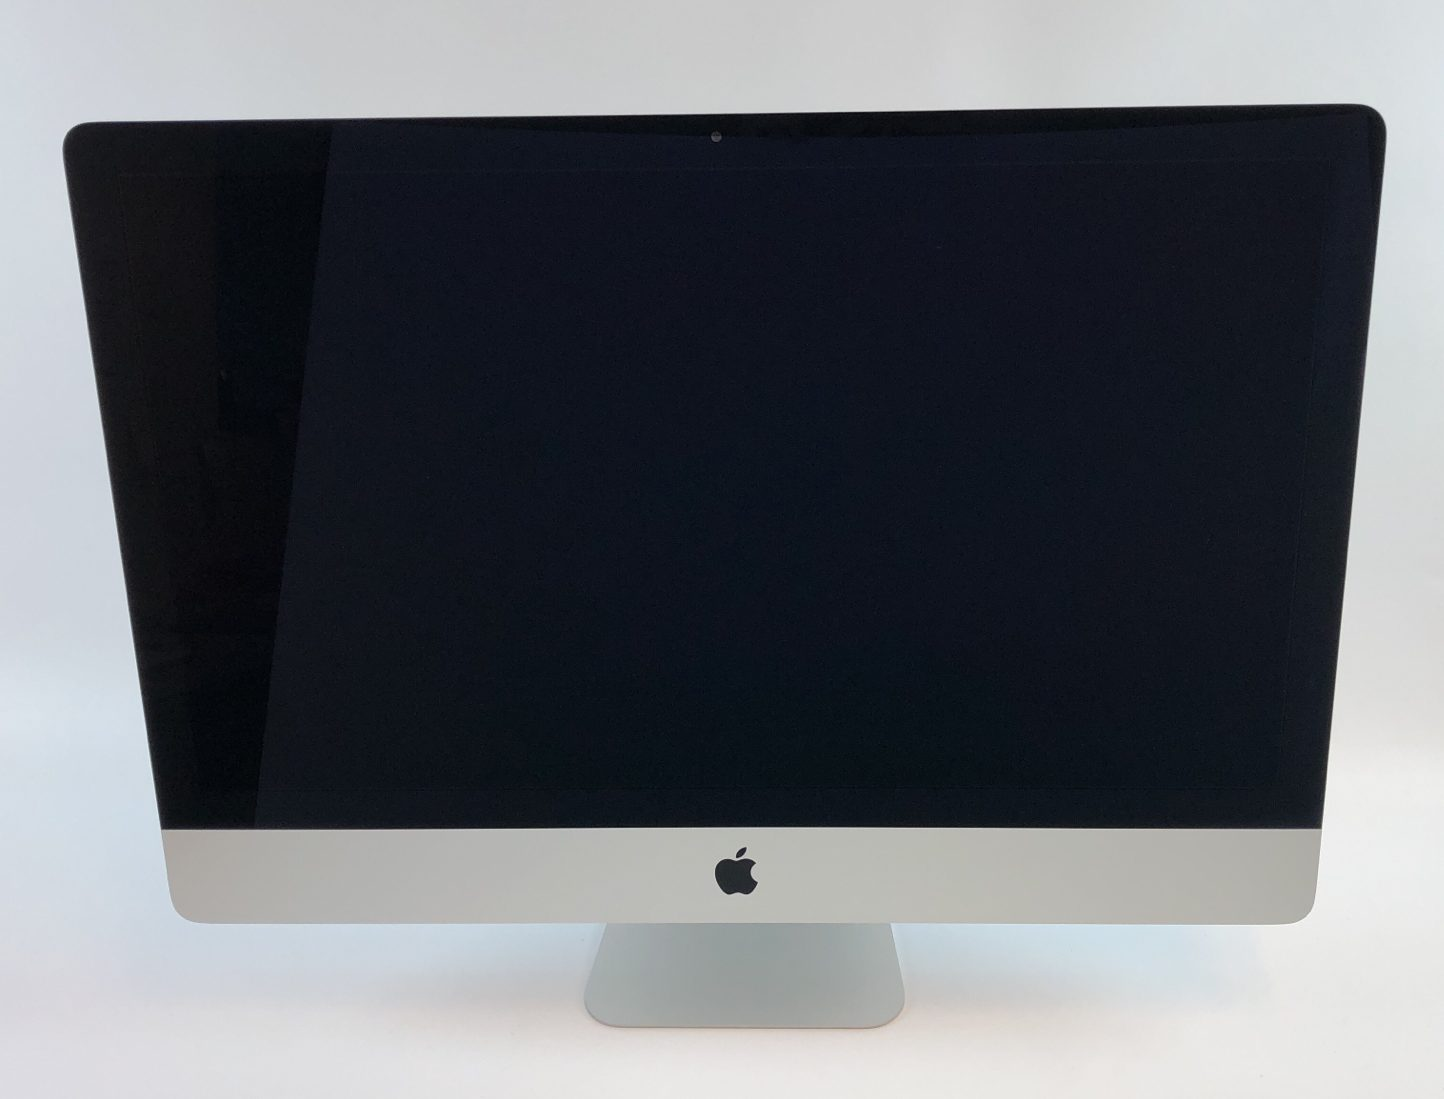 "iMac 27"" Late 2013 (Intel Quad-Core i7 3.5 GHz 32 GB RAM 3 TB Fusion Drive), Intel Quad-Core i7 3.5 GHz, 32 GB RAM, 3 TB Fusion Drive, Afbeelding 1"